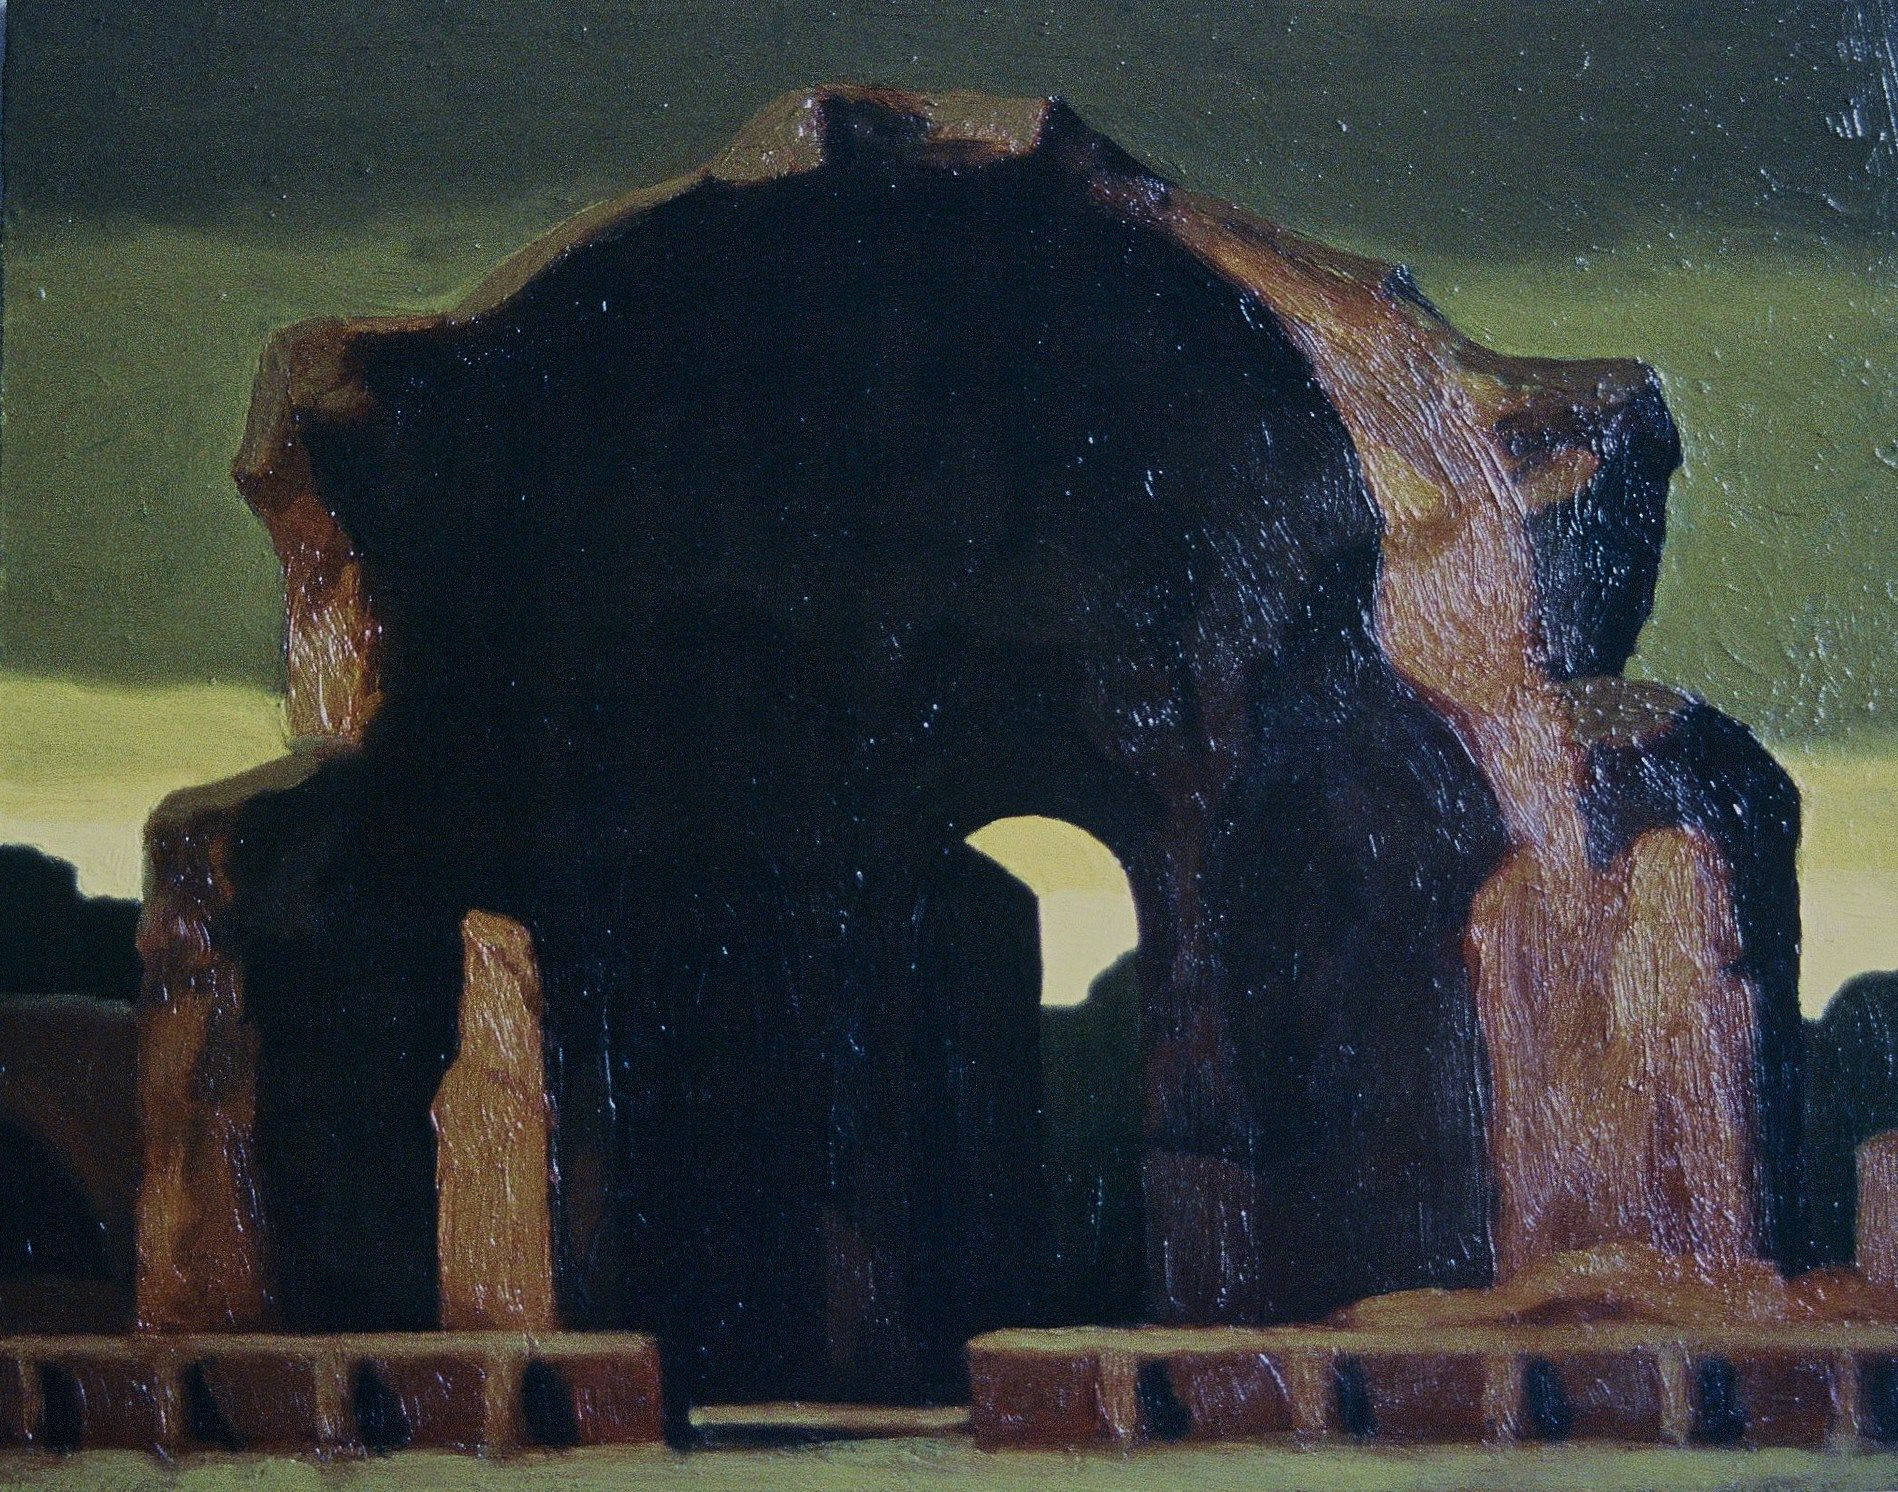 Hadrian's Villa, Italy   by Renny Tait 1993   12x14cm   Oil on Canvas